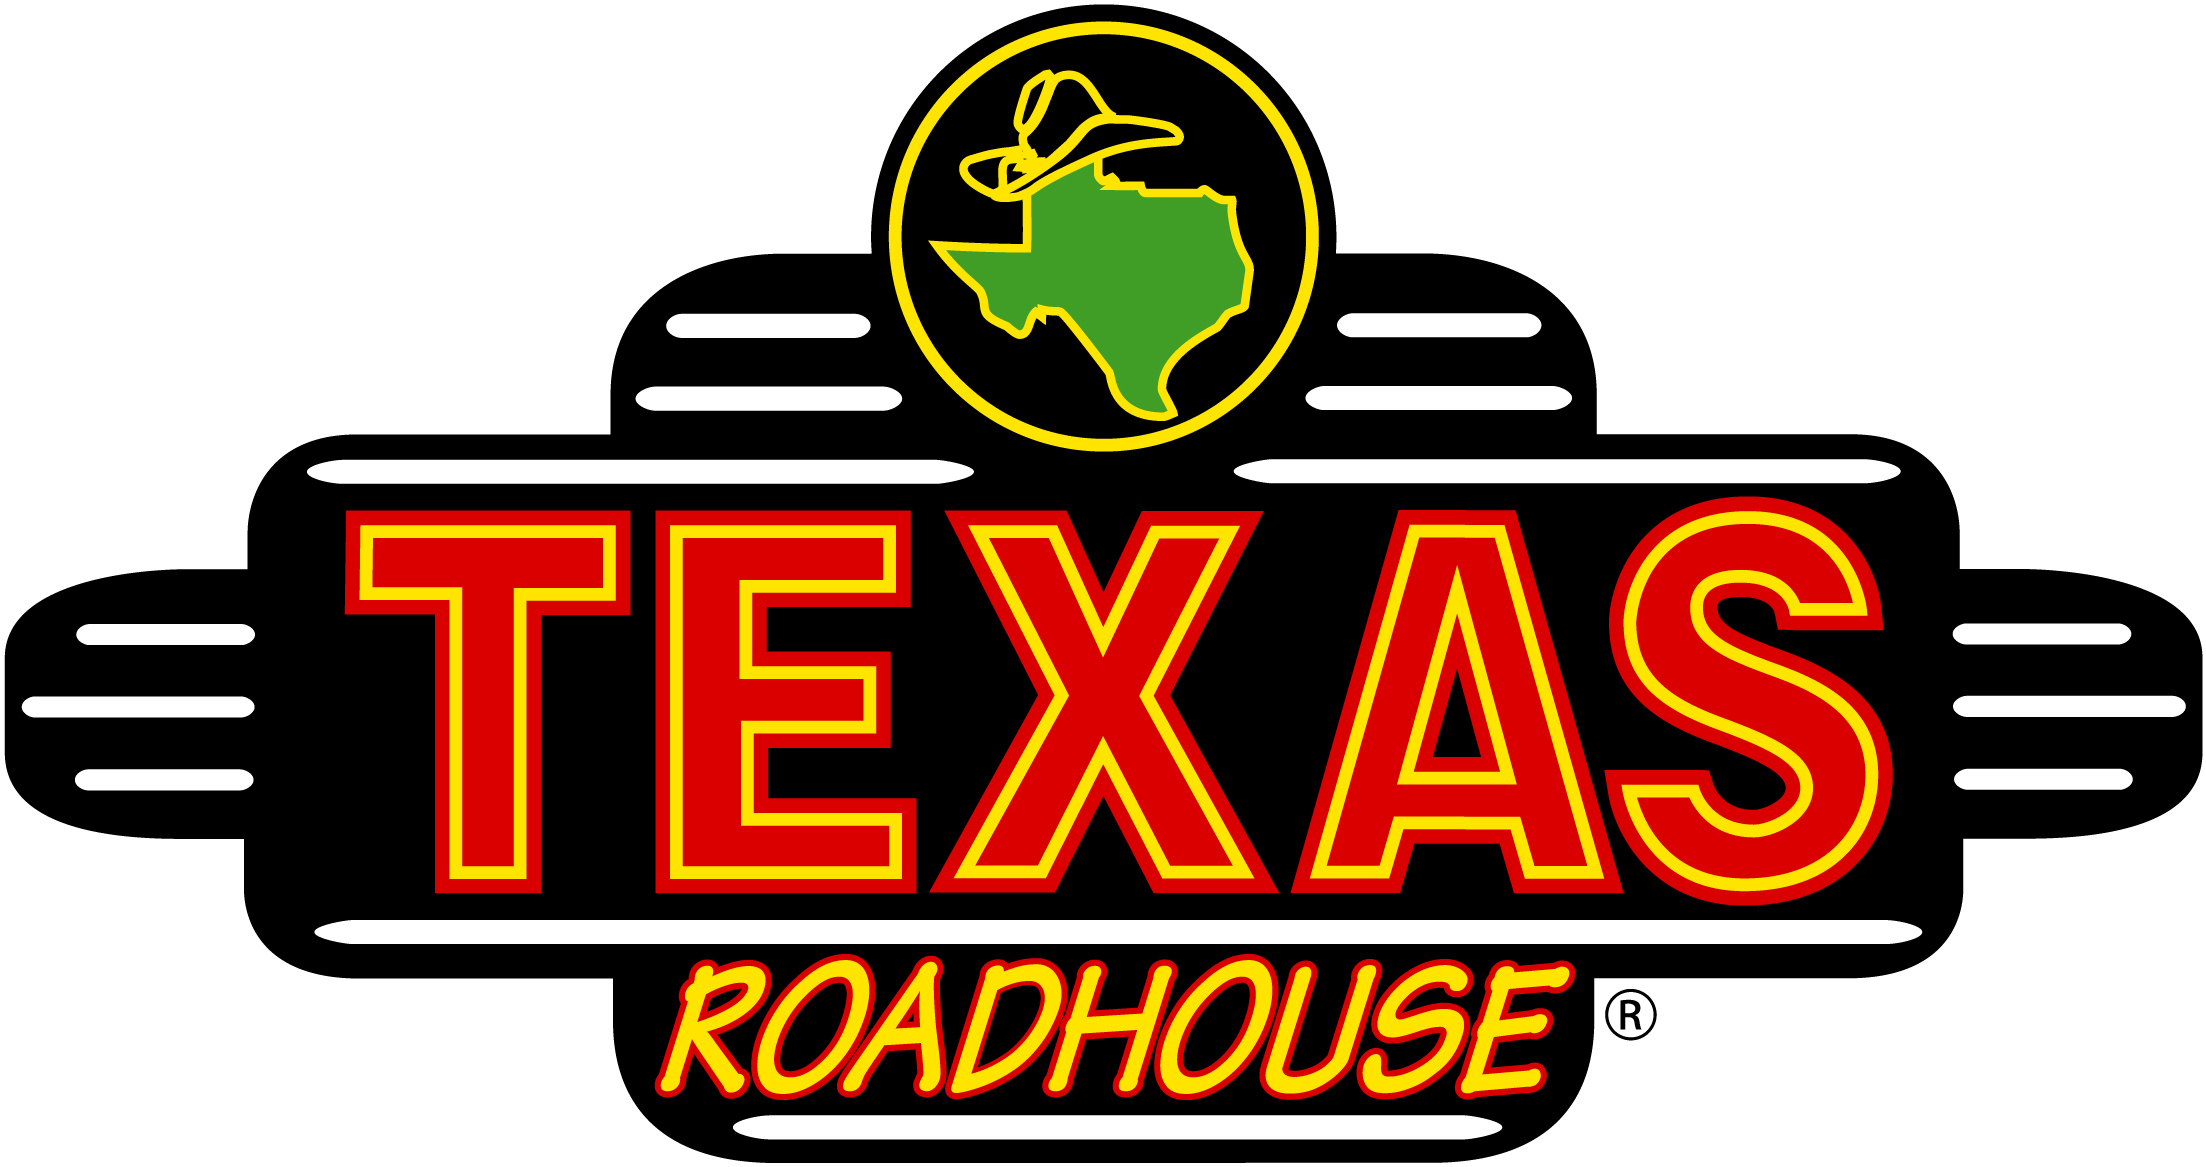 Servicing Texas Roadhouse Restaurant